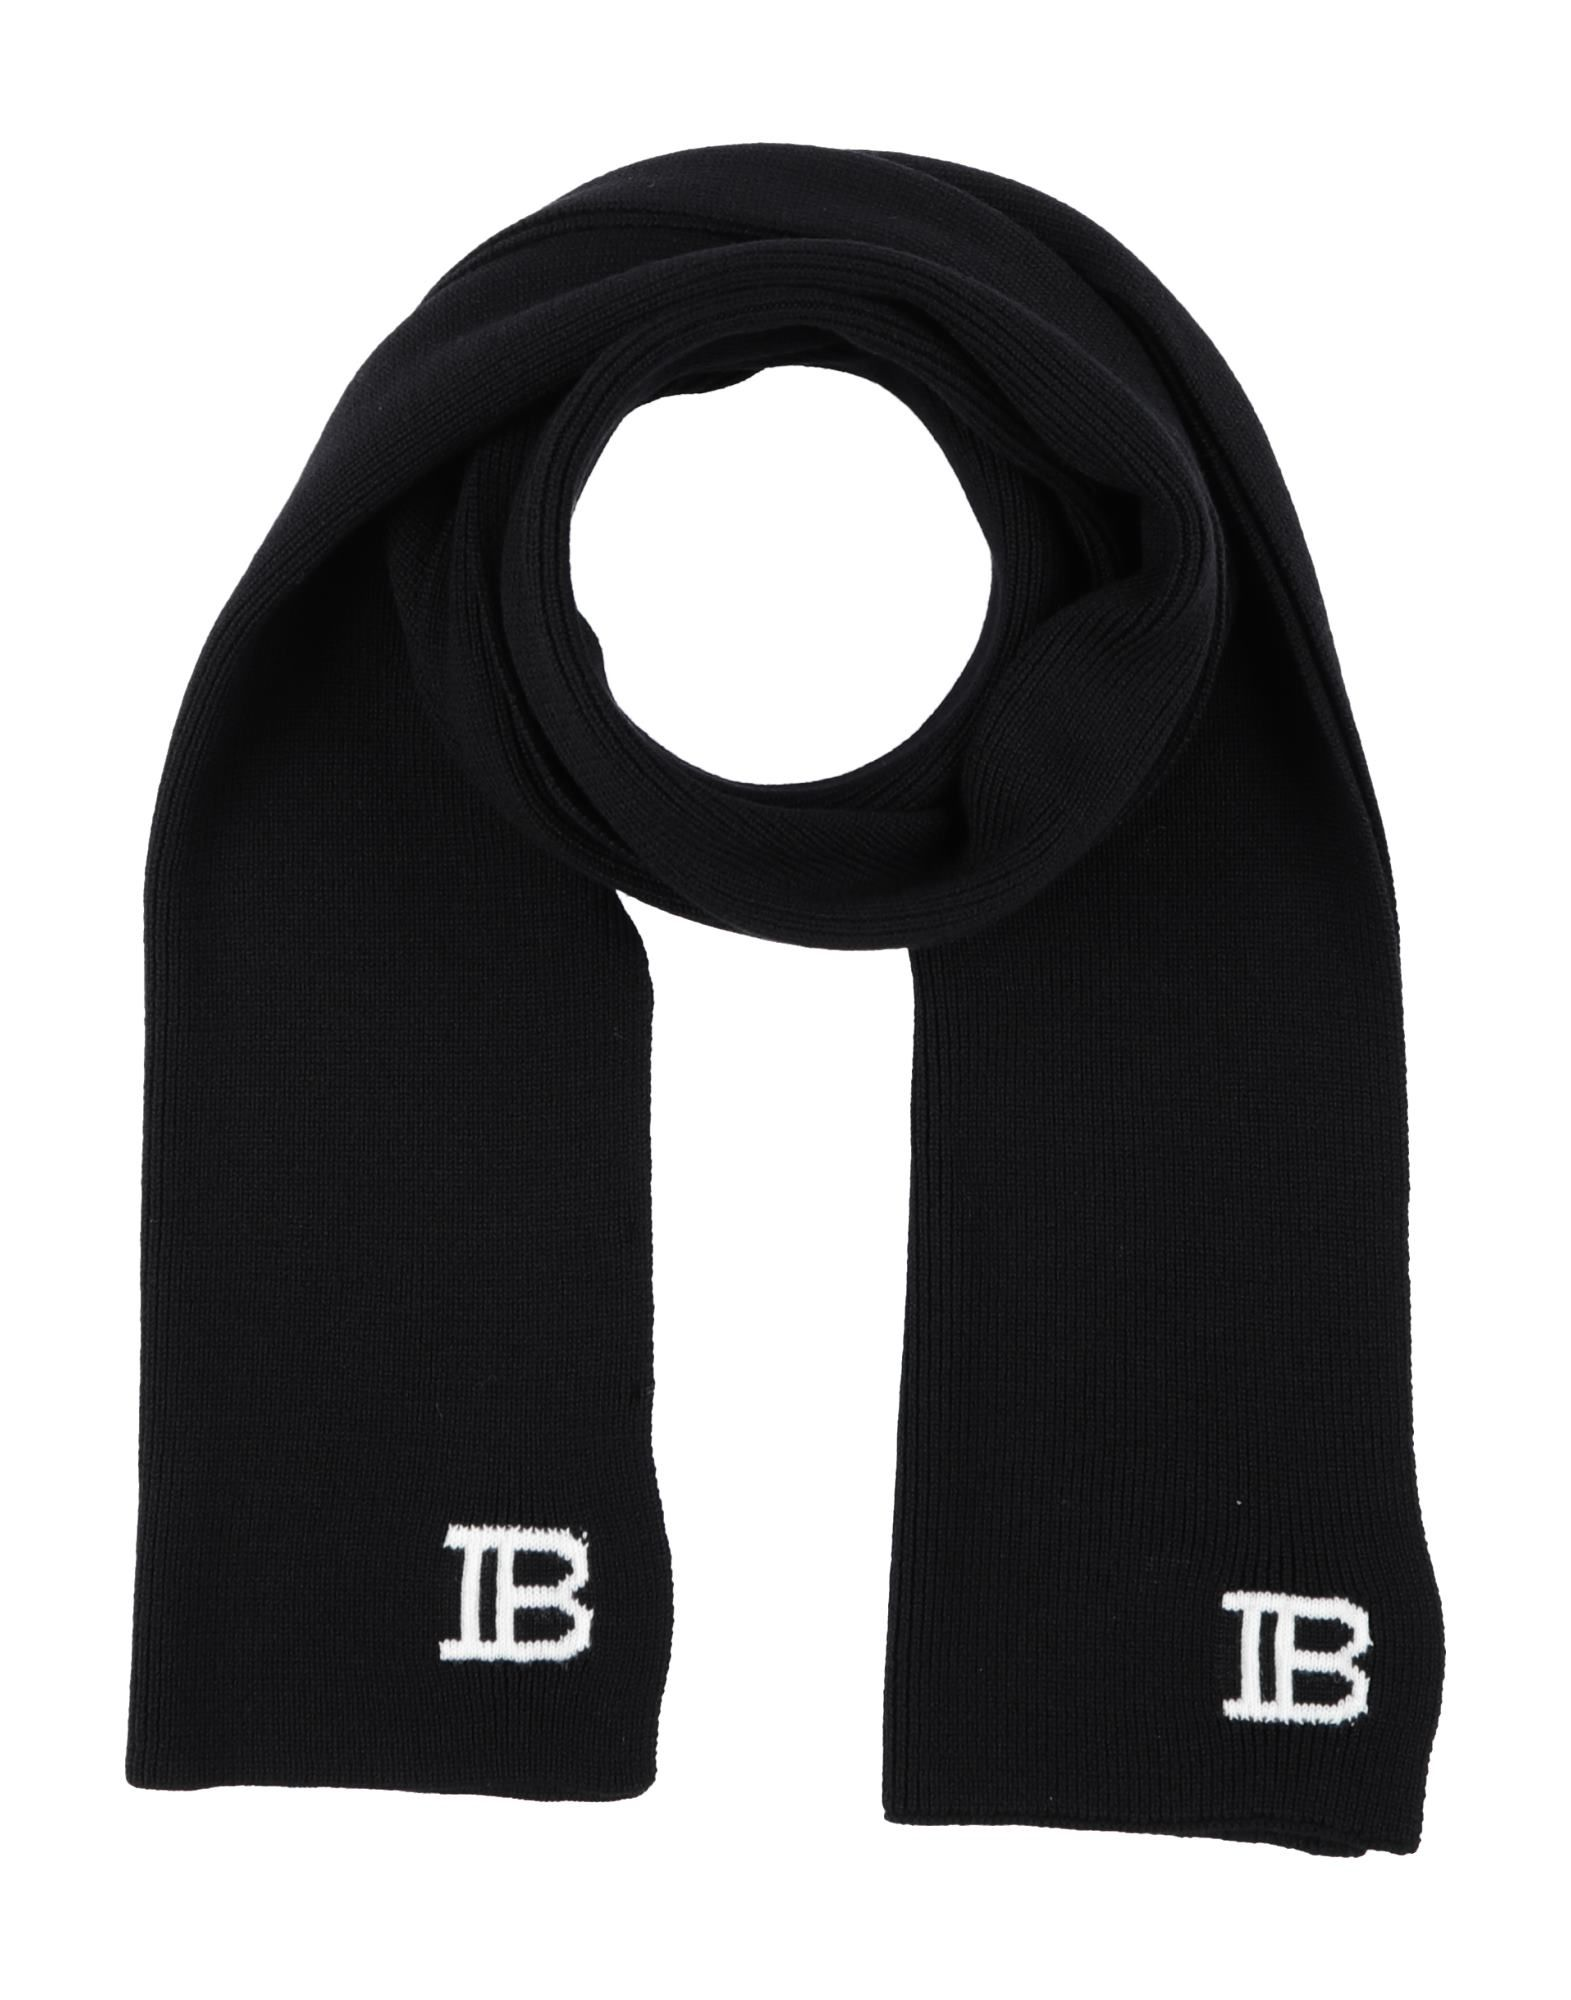 BALMAIN Scarves. knitted, logo, solid color. 100% Wool